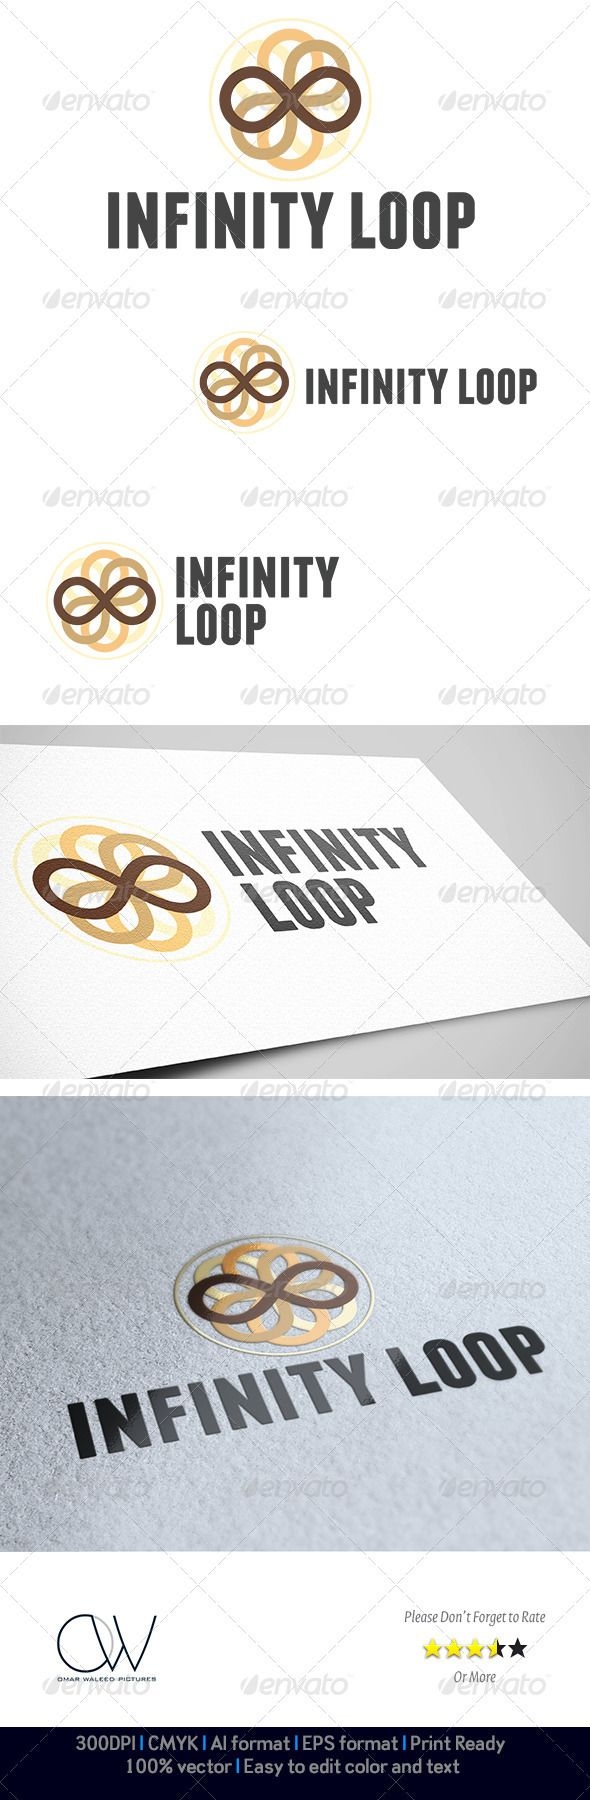 Infinity Loop Logo  #GraphicRiver                                Logo Description: Infinity Loop Logo can be used in commercial and industrial companies